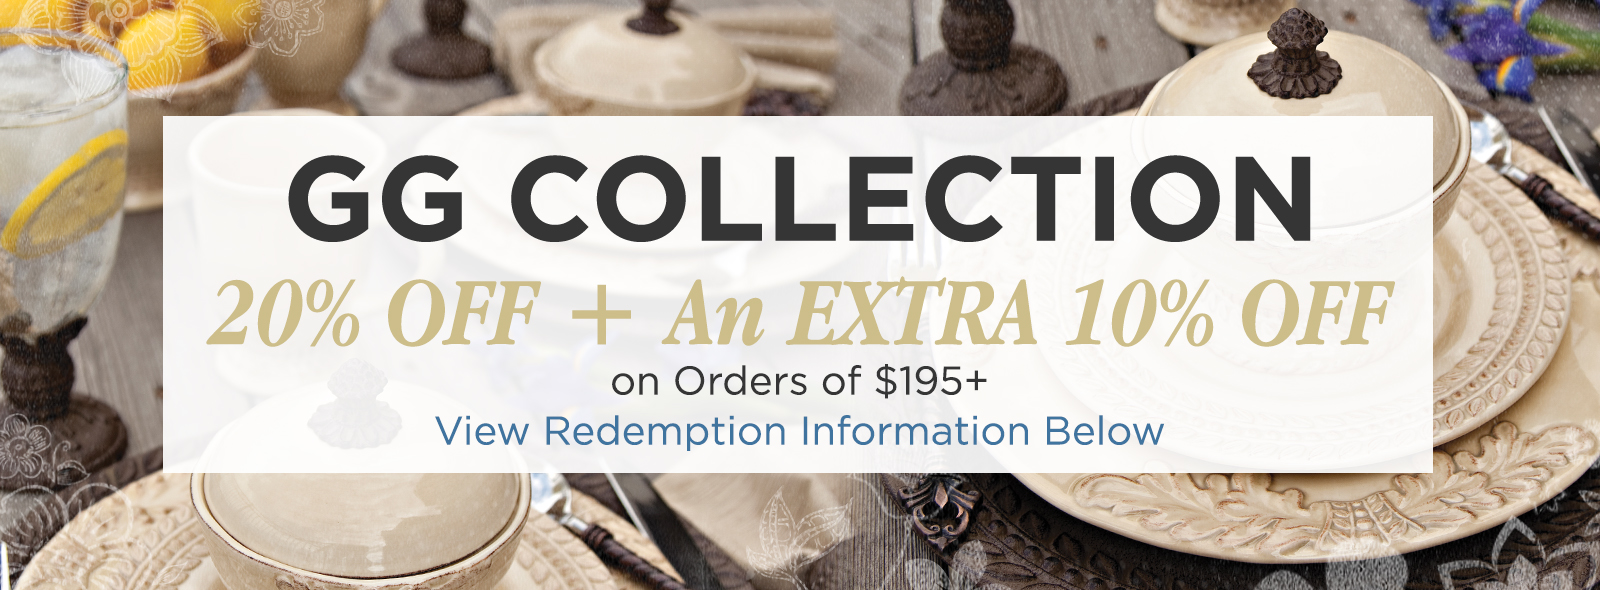 gg collection dinnerware - Gg Collection